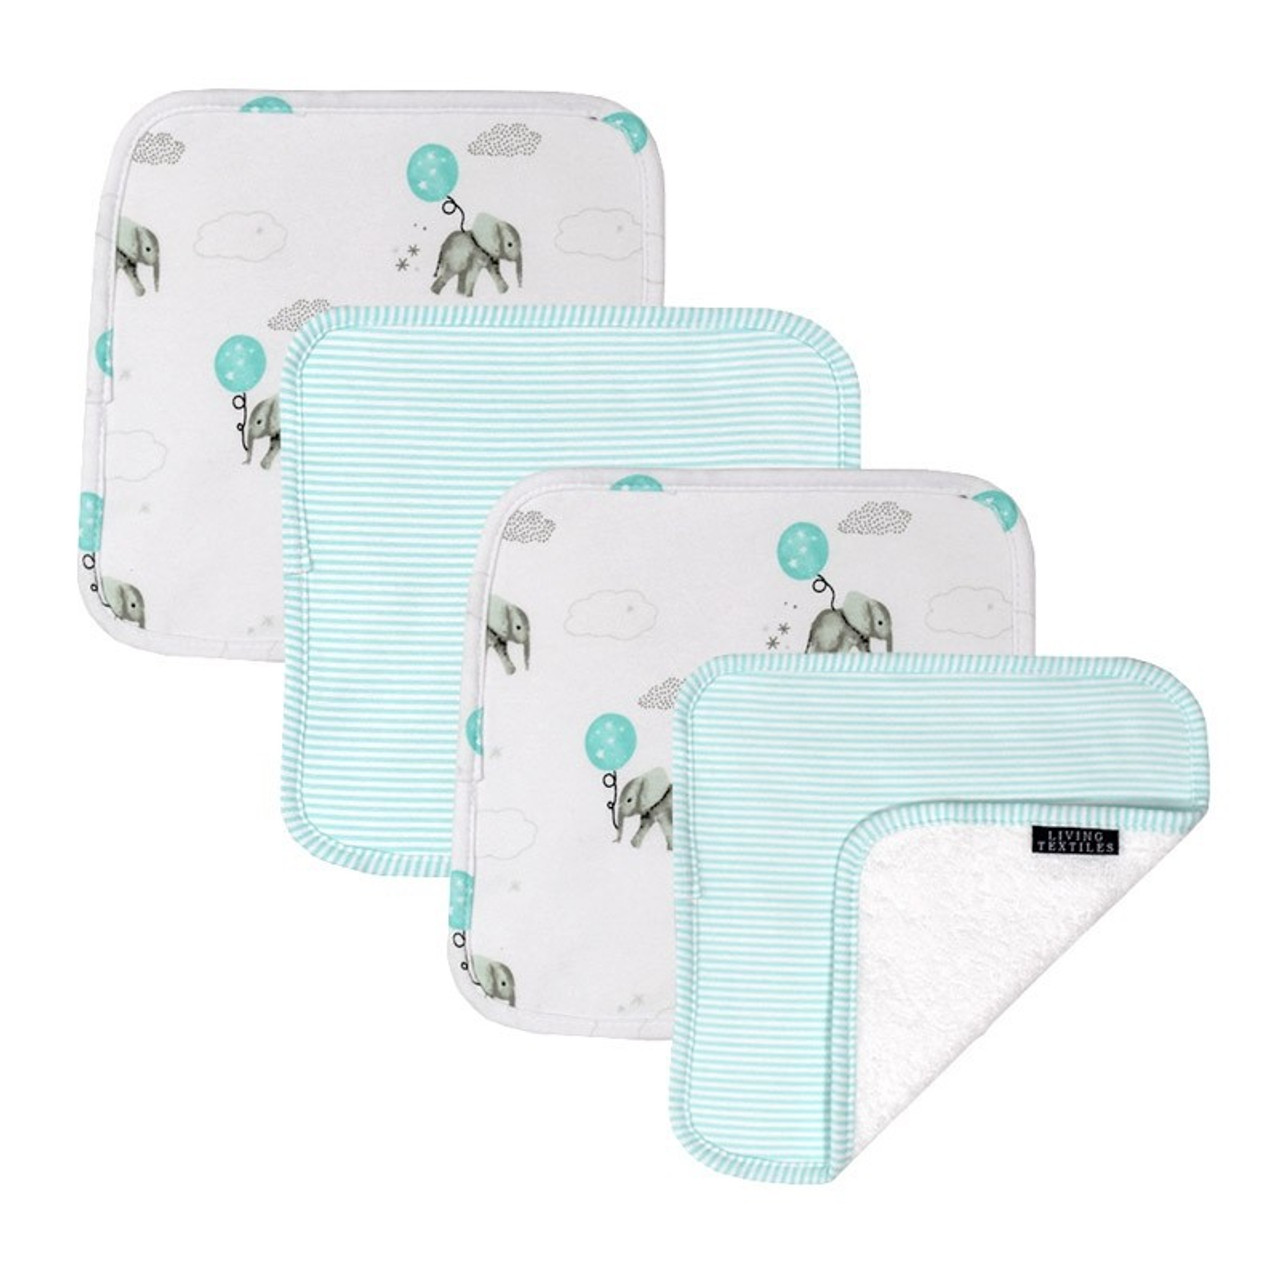 Living Textiles Cotton Towelling Jersey 4pk Face Wash Cloths - ELEPHANT Living Textiles Cotton Towelling Jersey 4pk Face Wash Cloths - SWAN Add a bit if luxury to baby's day with the 4pk of washcloths from Living Textiles. These deluxe  washcloths are perfect for everyday use during bath time or on the go.